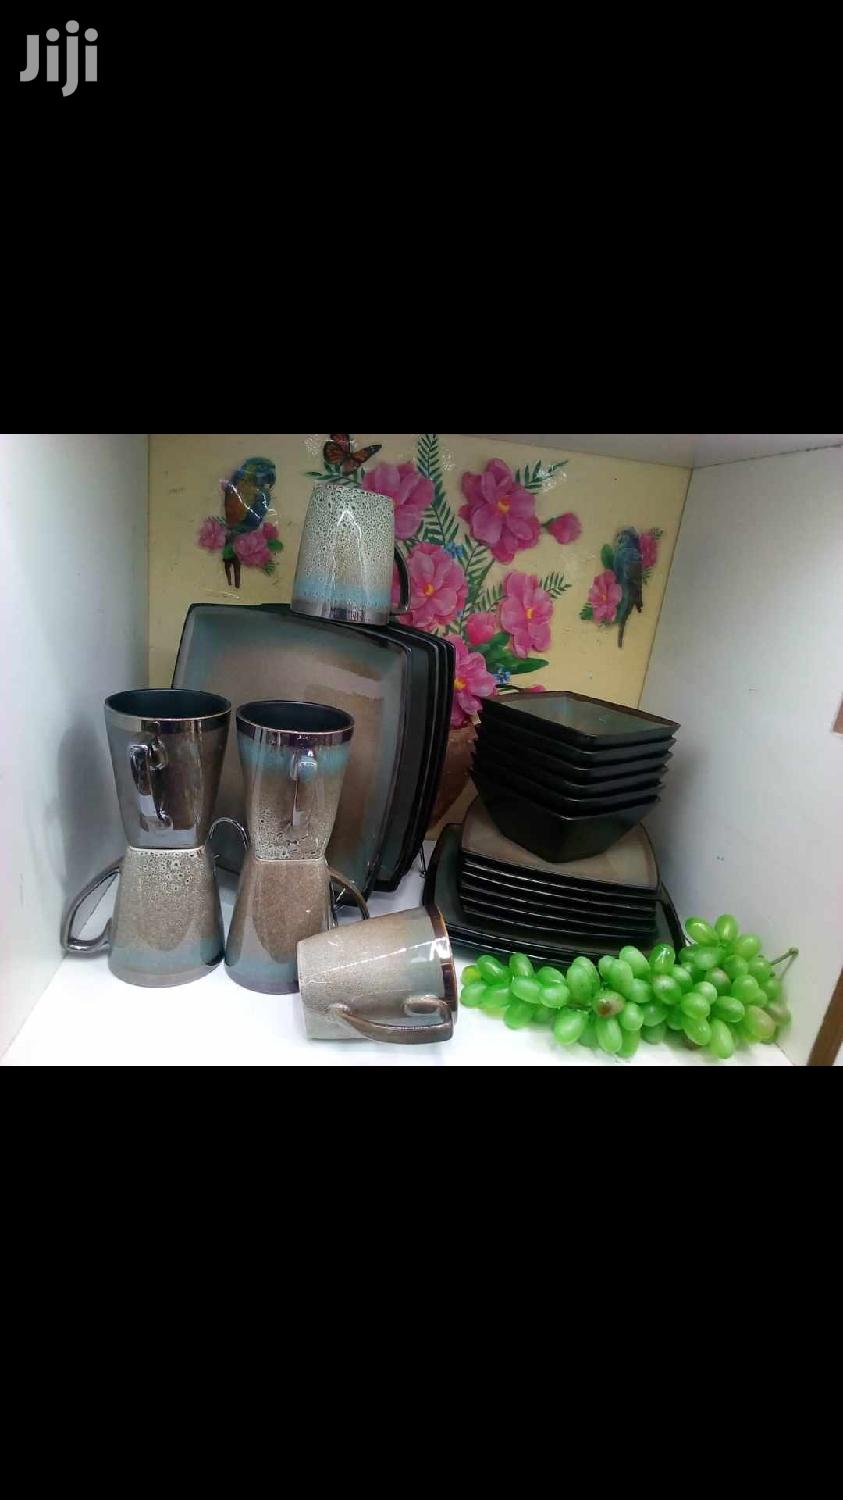 24pc Ceramic Dinner Set/Dinner Set | Kitchen & Dining for sale in Nairobi Central, Nairobi, Kenya